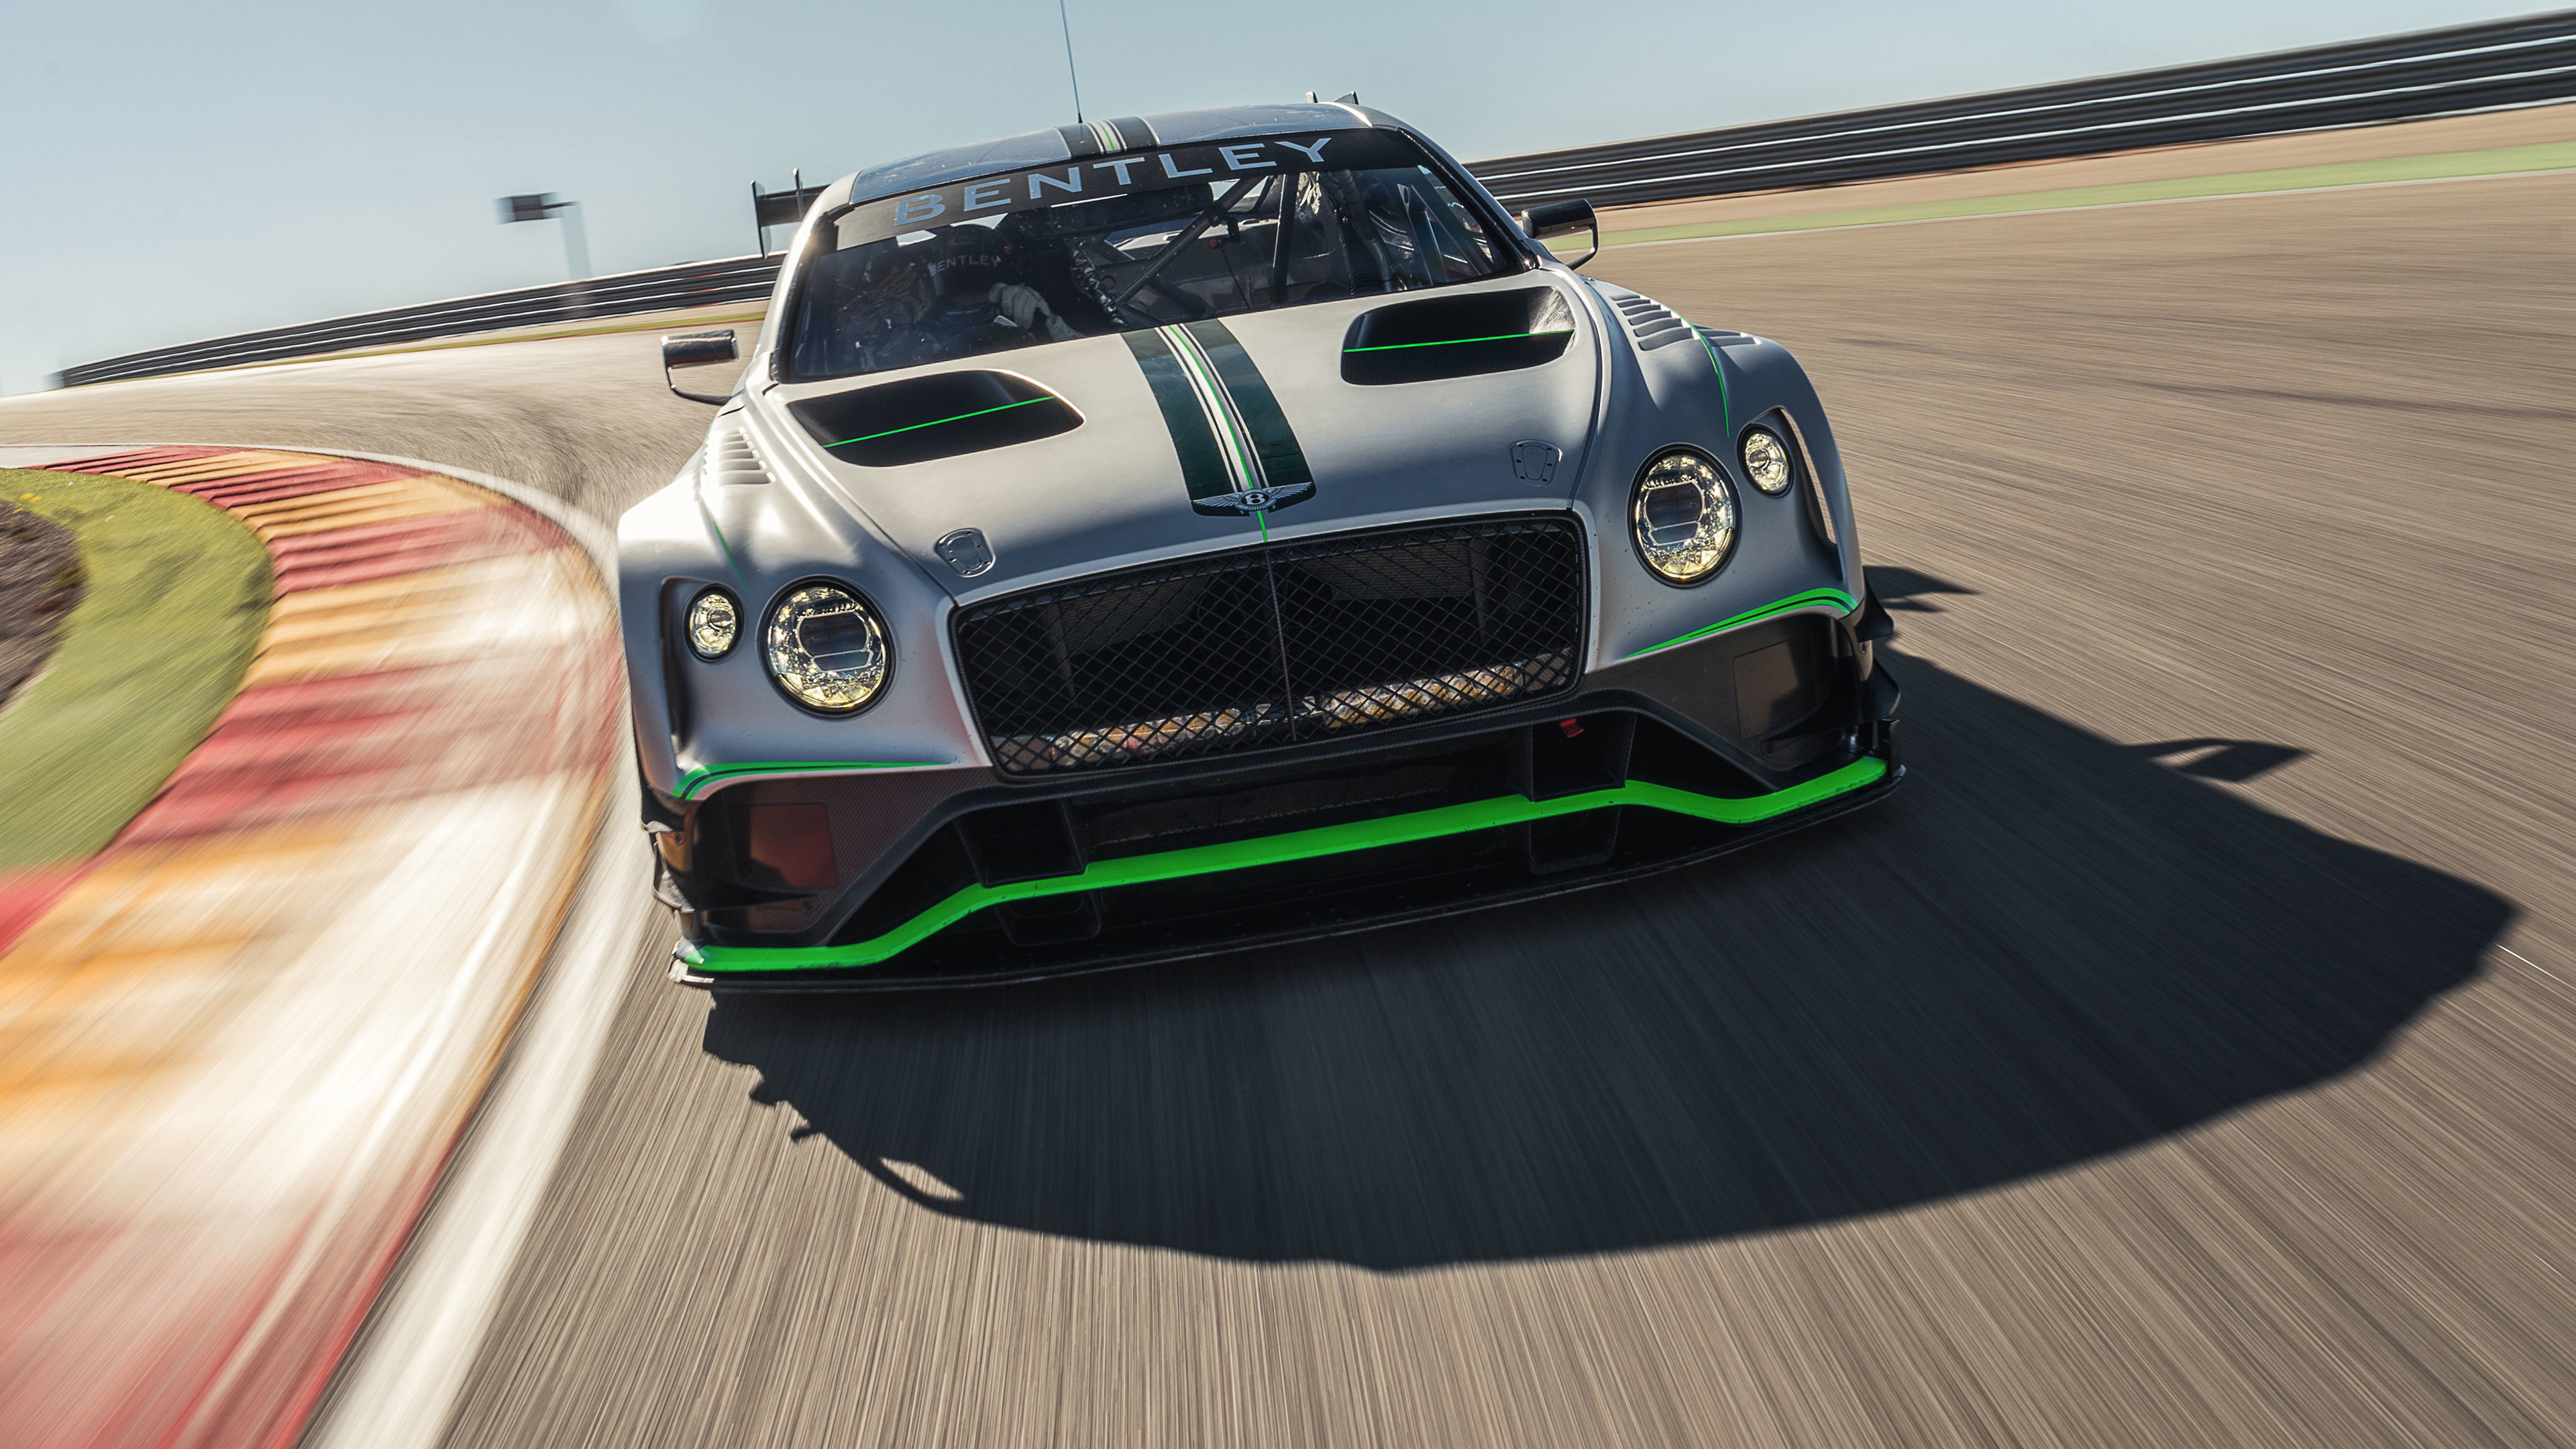 bentley continental gt3 front 1539110710 - Bentley Continental GT3 Front - hd-wallpapers, bentley wallpapers, bentley continental wallpapers, bentley continental gt3 wallpapers, 4k-wallpapers, 2018 cars wallpapers